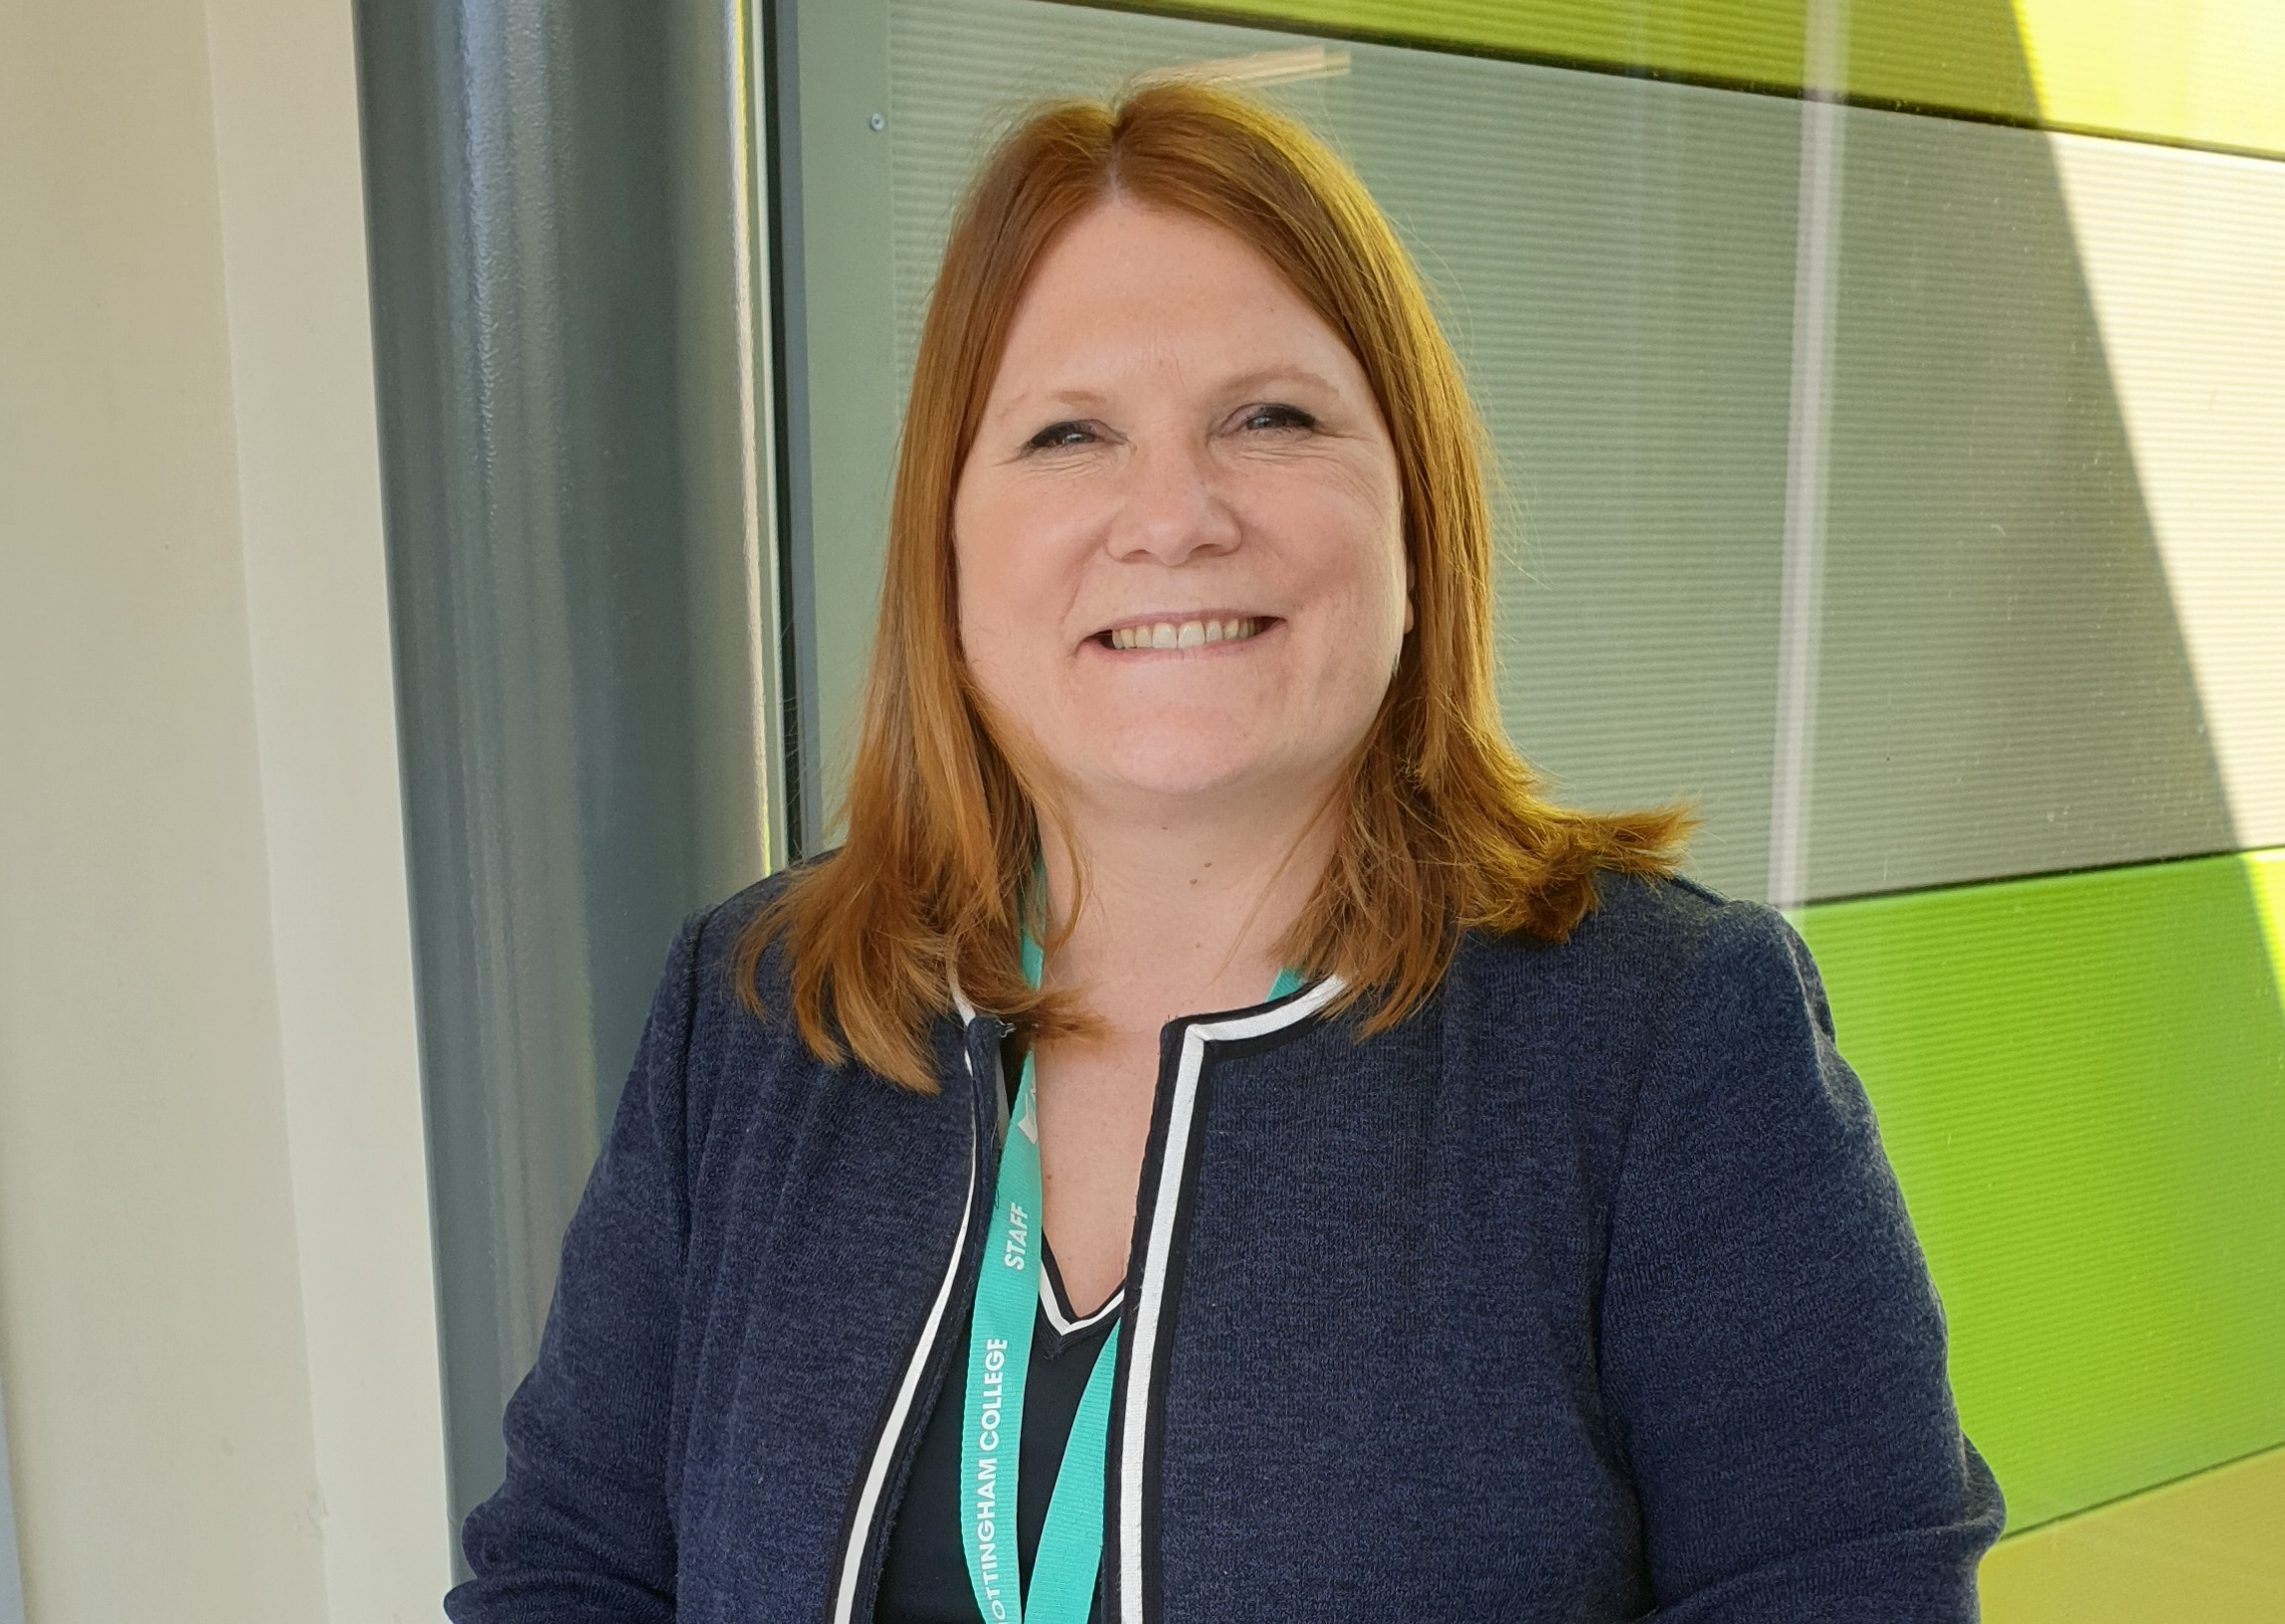 News release: New Director to lead apprenticeships and employer services at Nottingham College